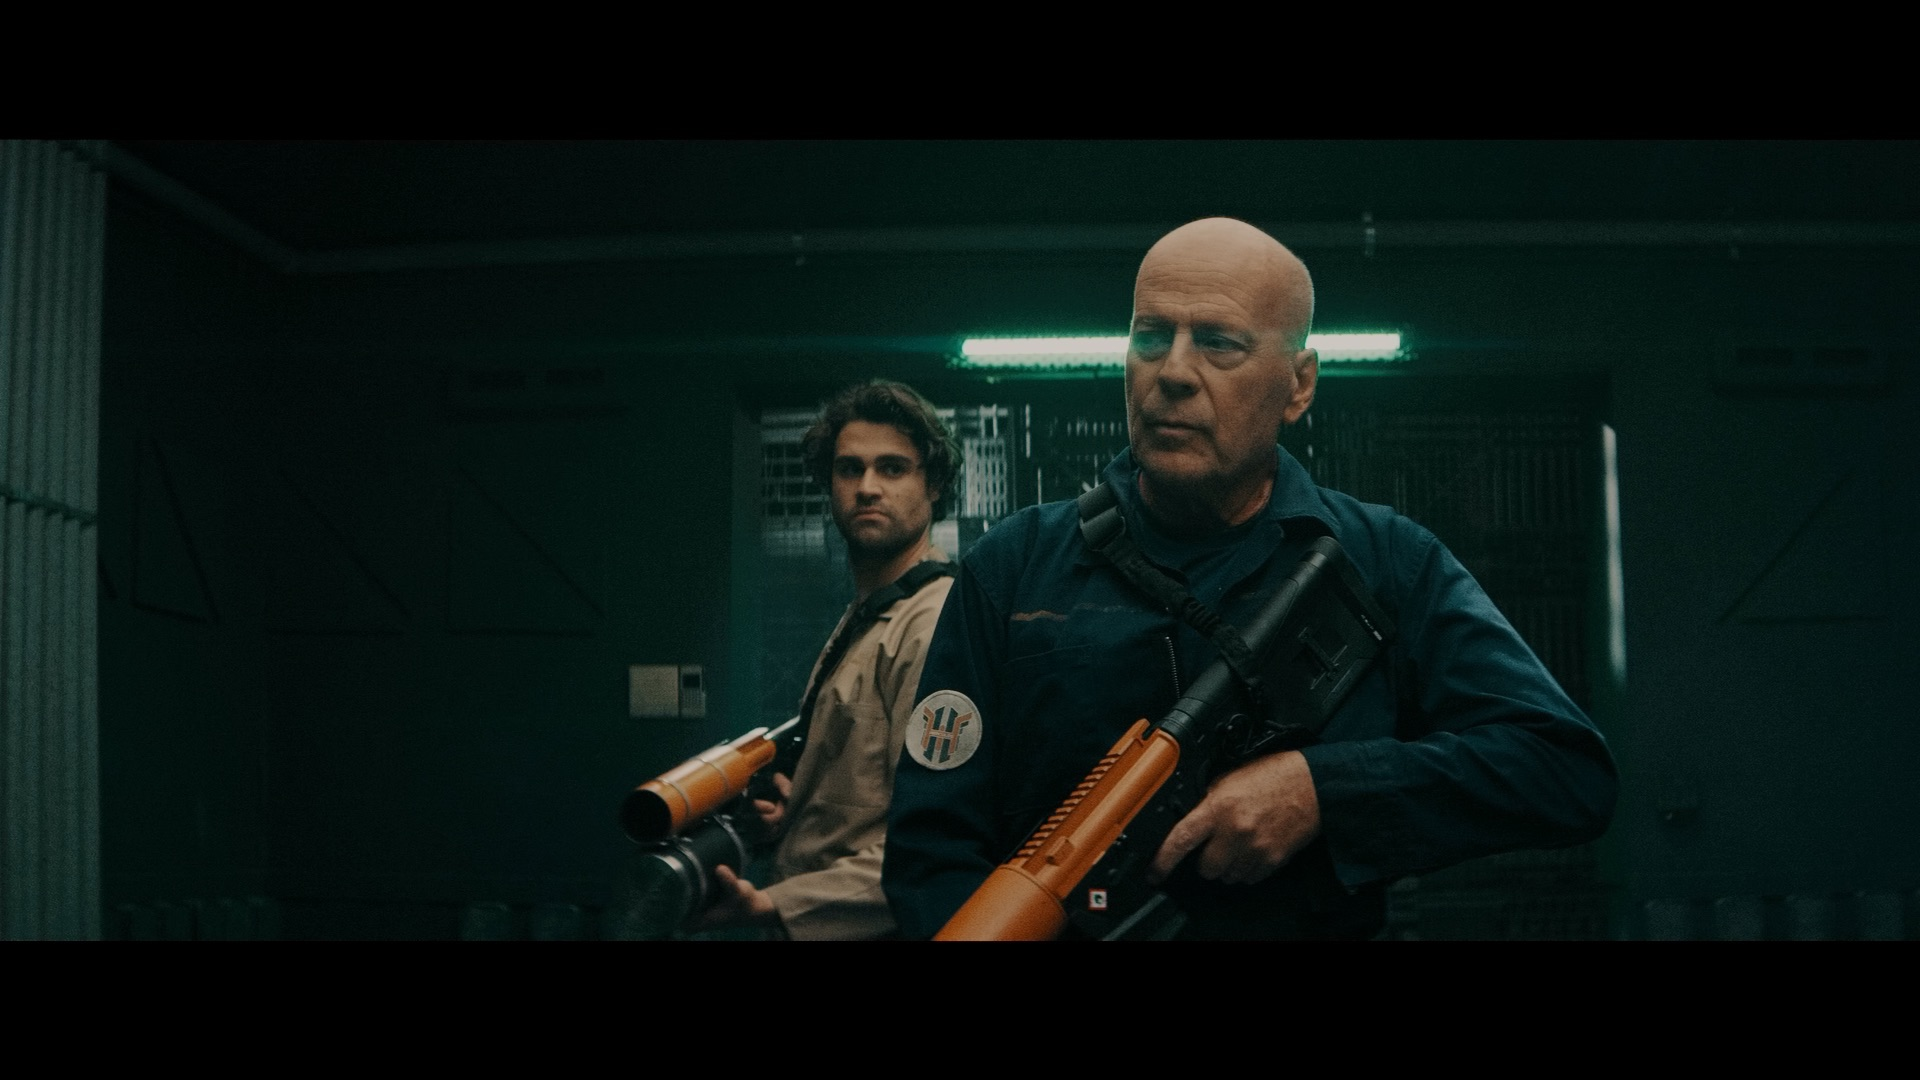 (L - R) Cody Kearsley as Noah and Bruce Willis as Clay Young in the sci - fi/action film, BREACH , a Saban Films release. Photo courtesy of Saban Films